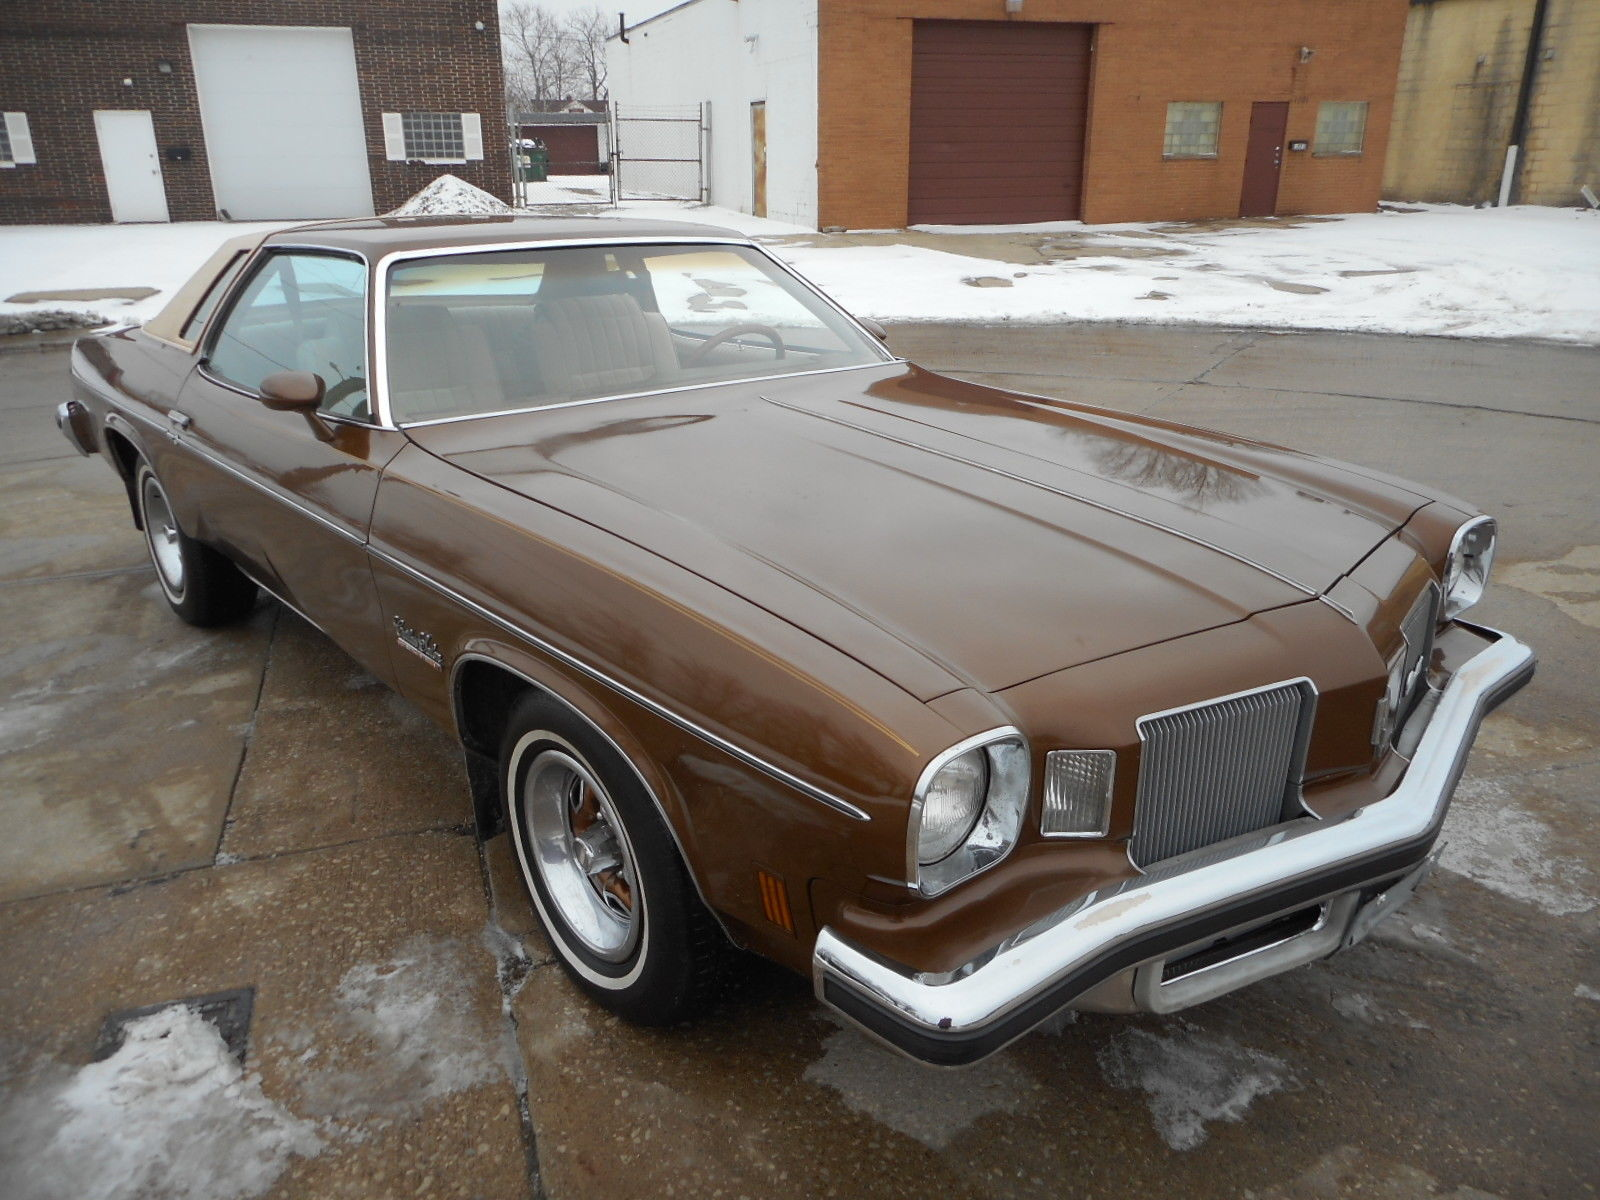 Daily turismo auction watch 1974 oldsmobile cutlass salon for 1974 oldsmobile cutlass salon